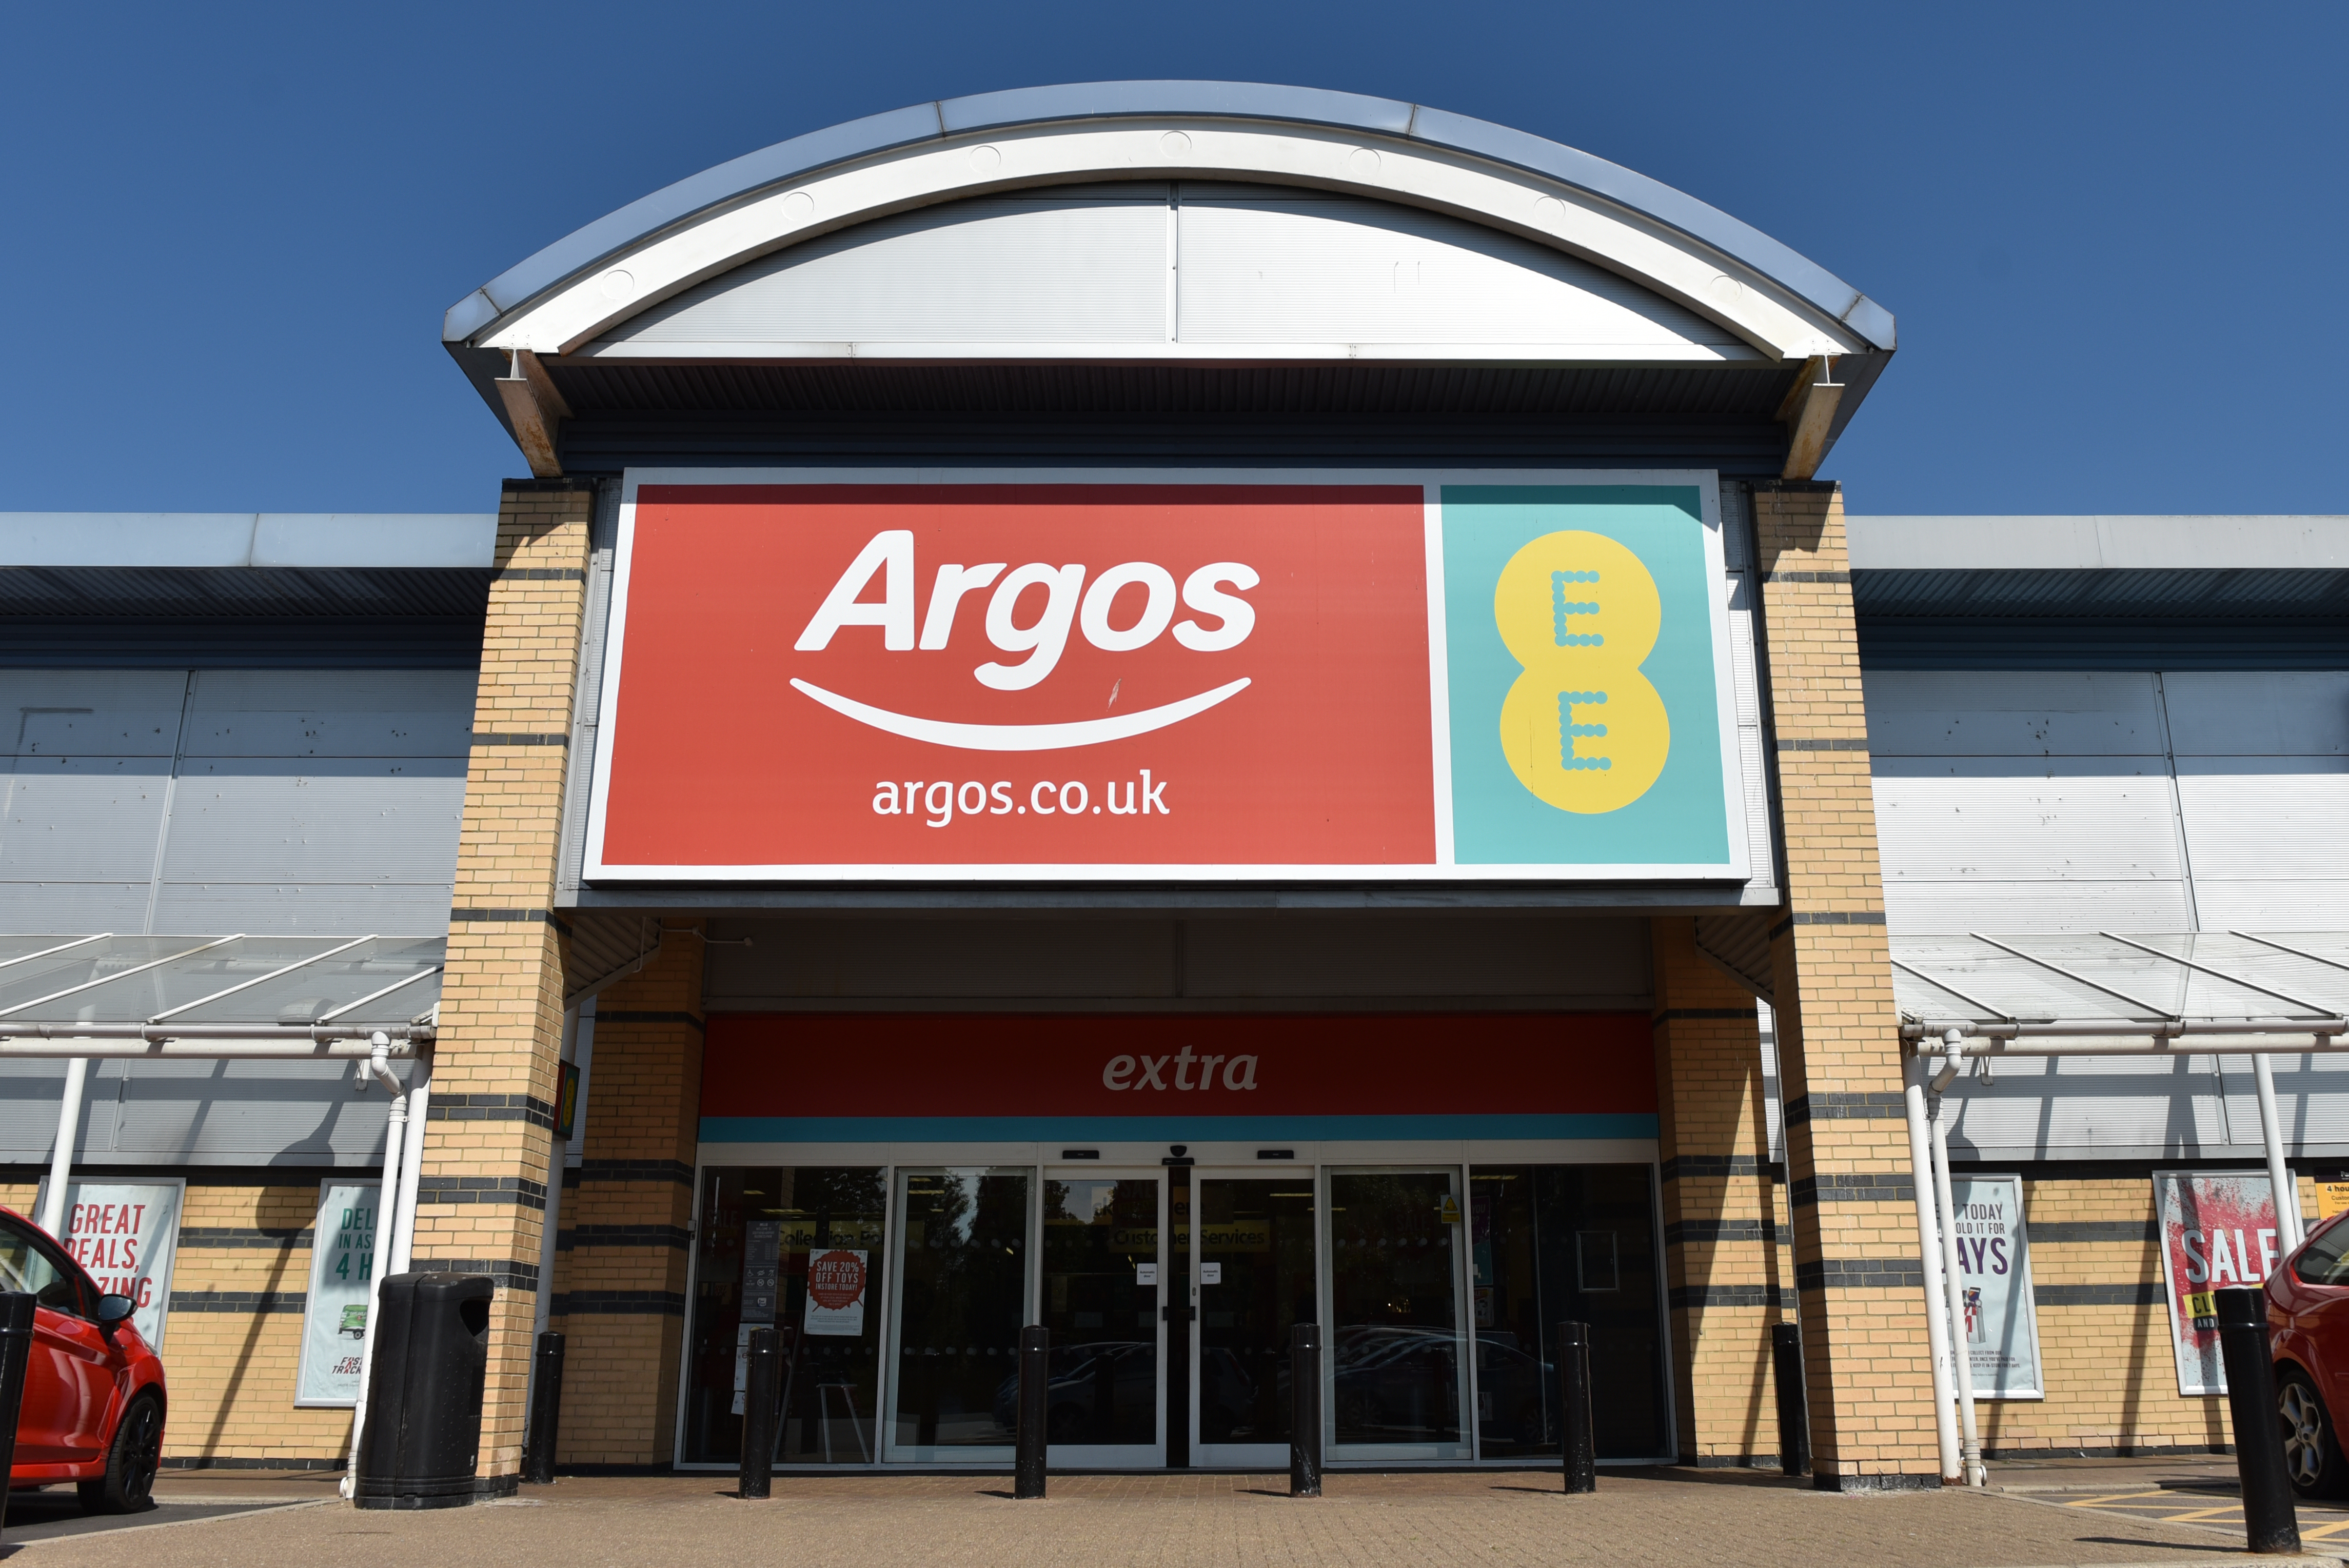 You can pick up online orders at Argos stores but you can't shop inside